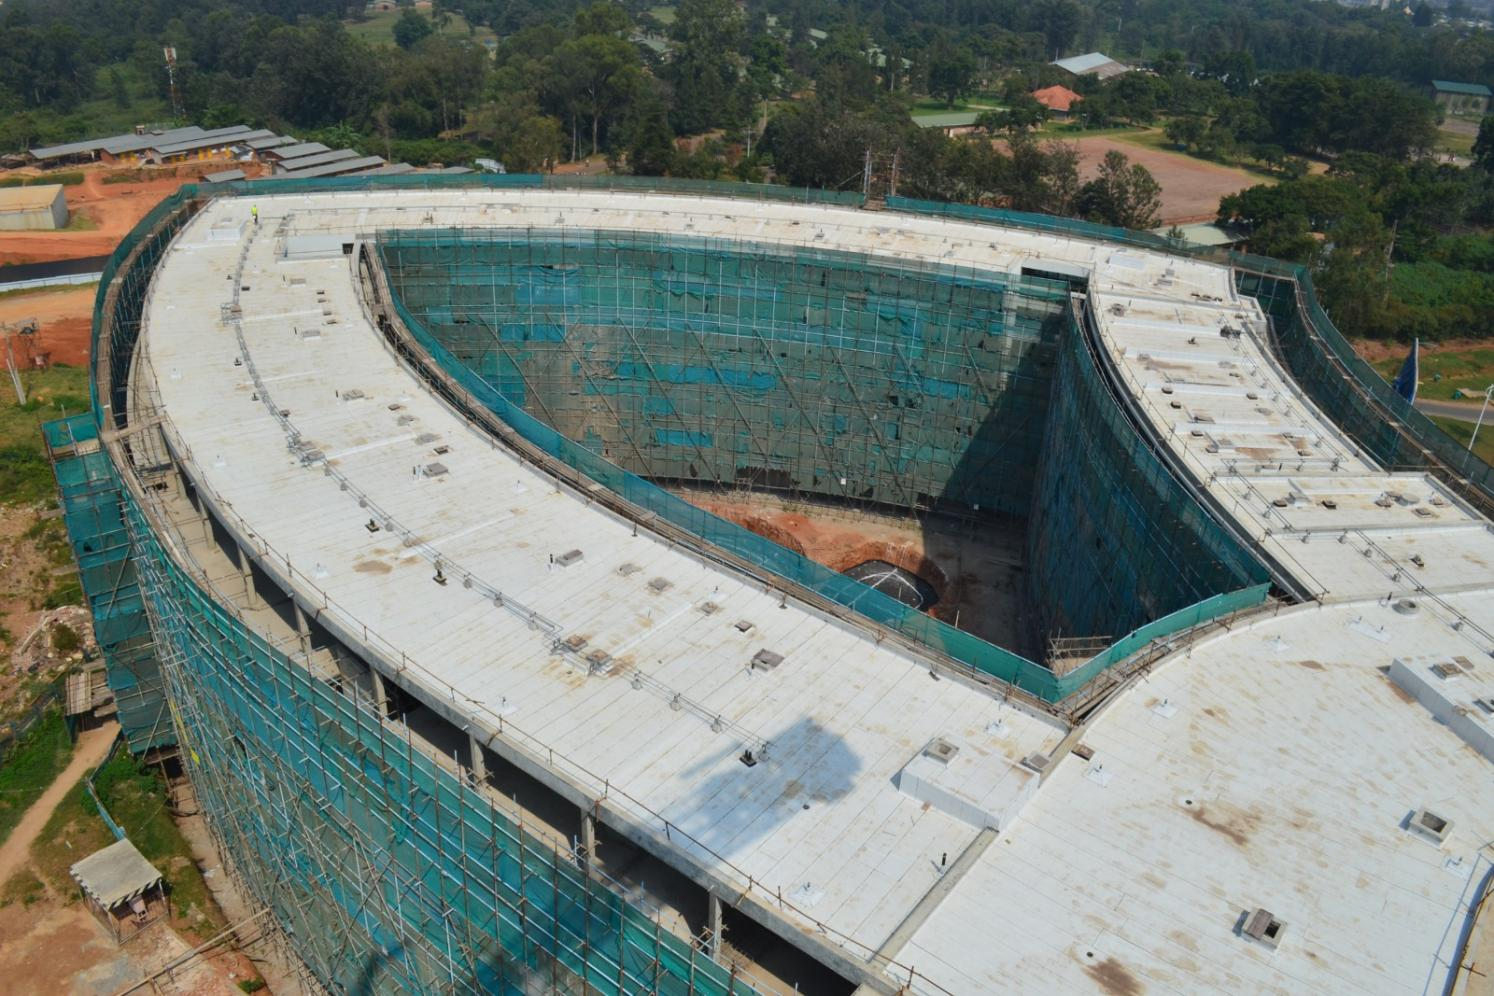 kigali convention center under construction 2